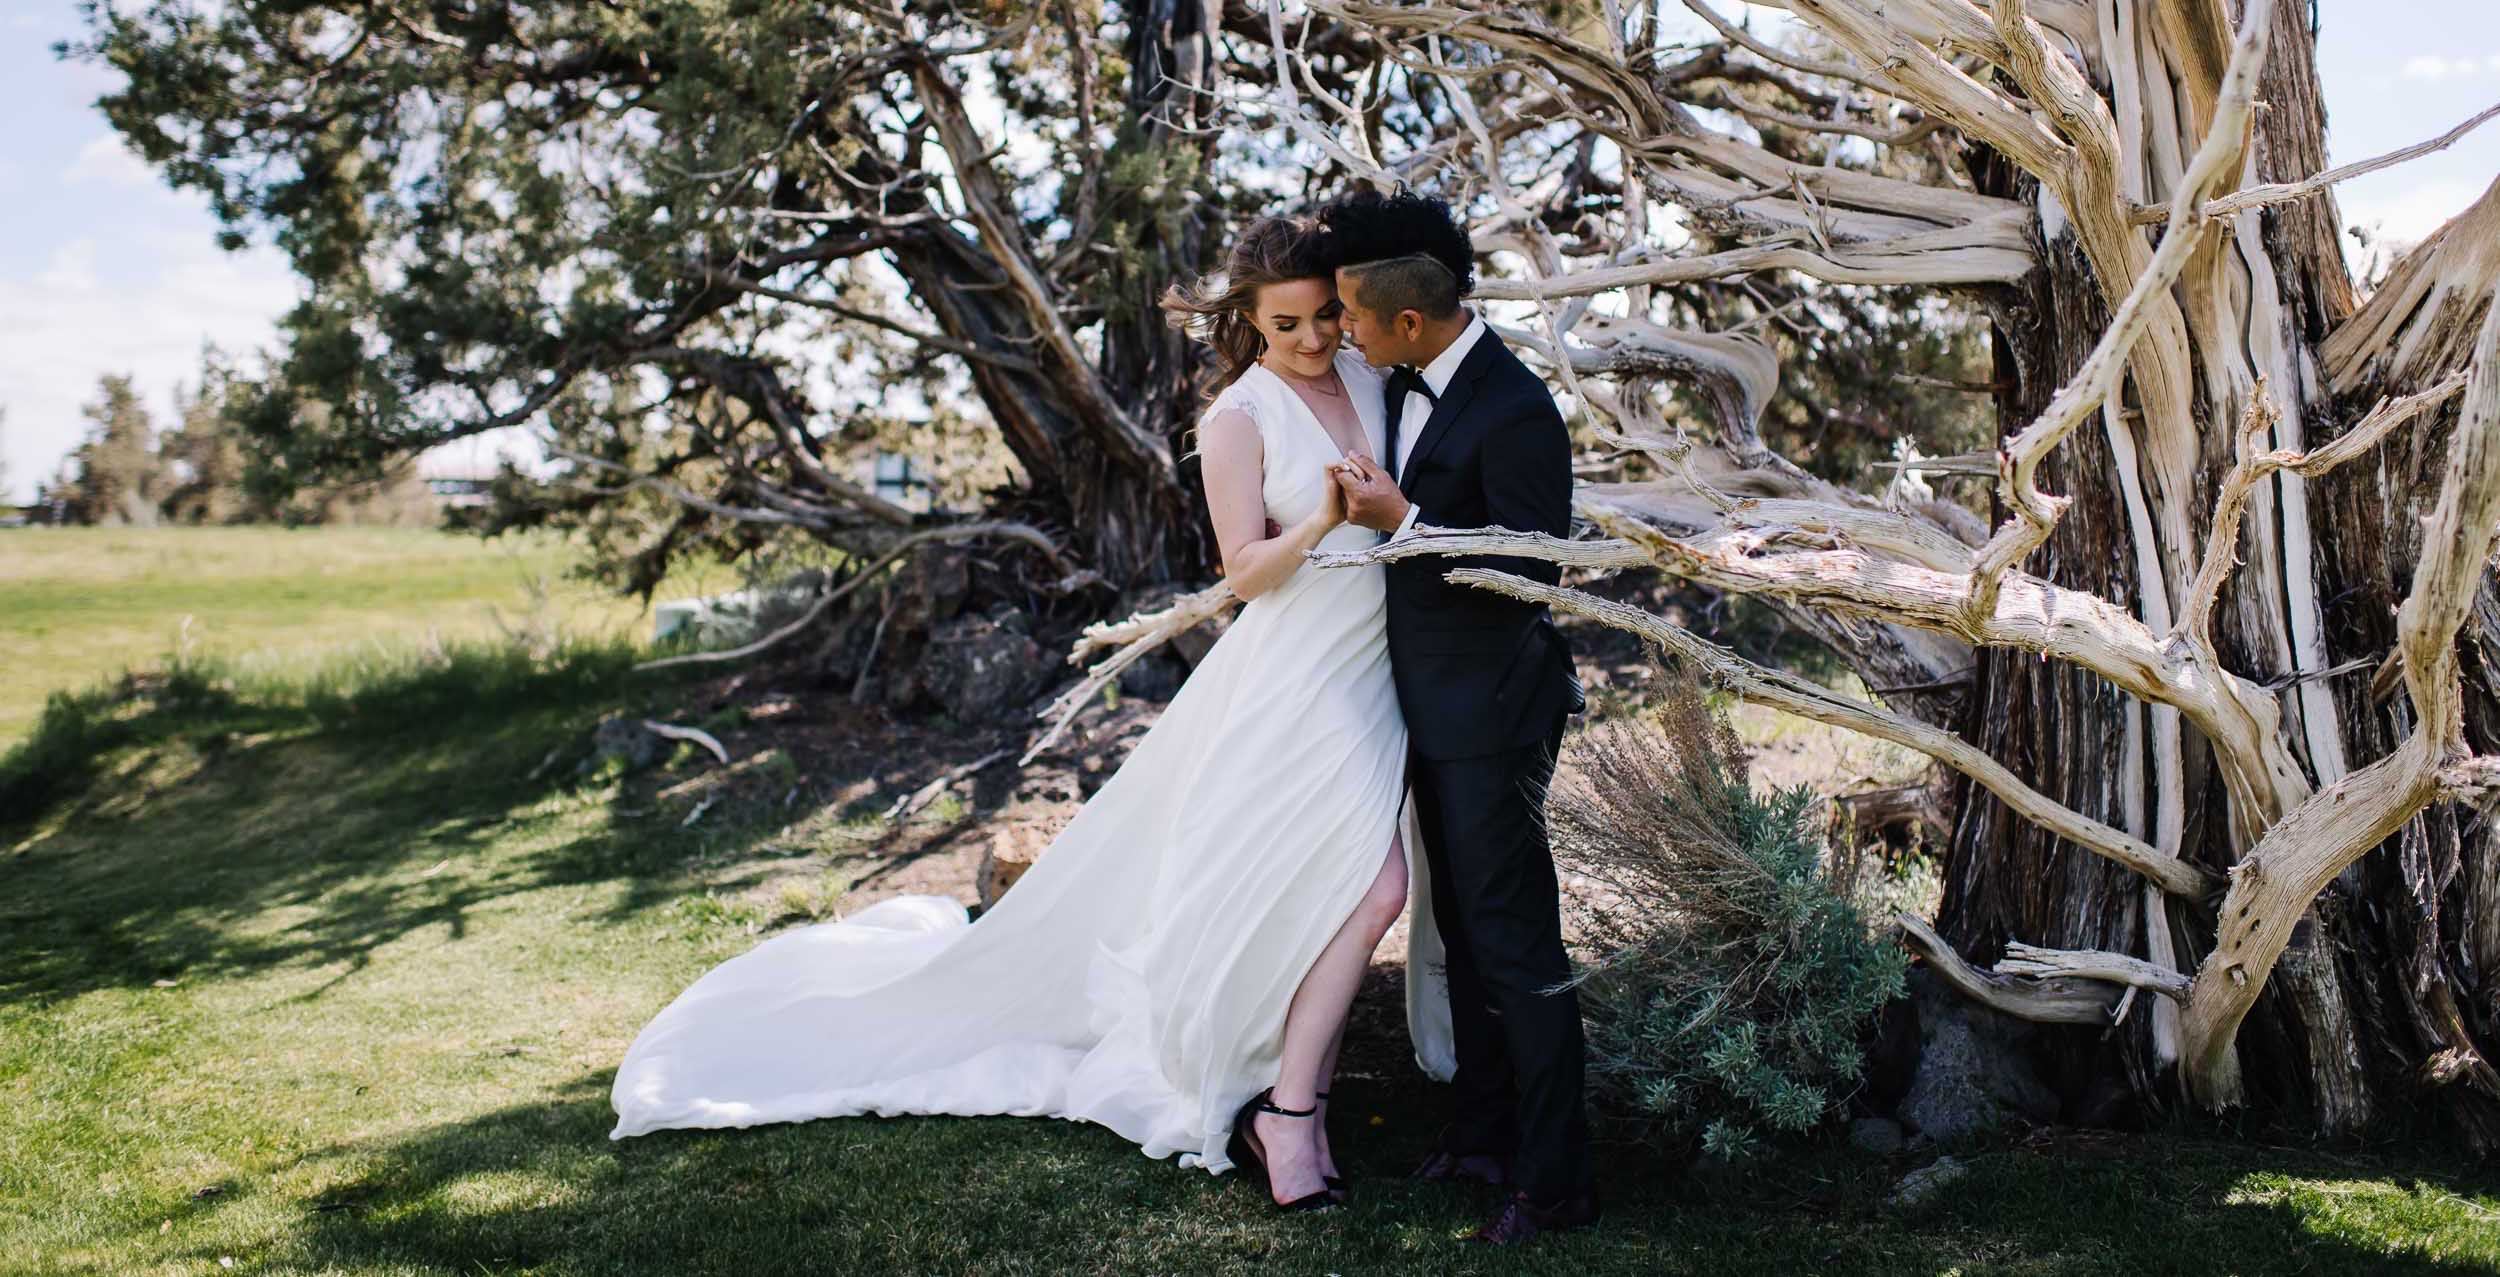 What is an intimate wedding? - A wedding experience that is 100% focused on you.